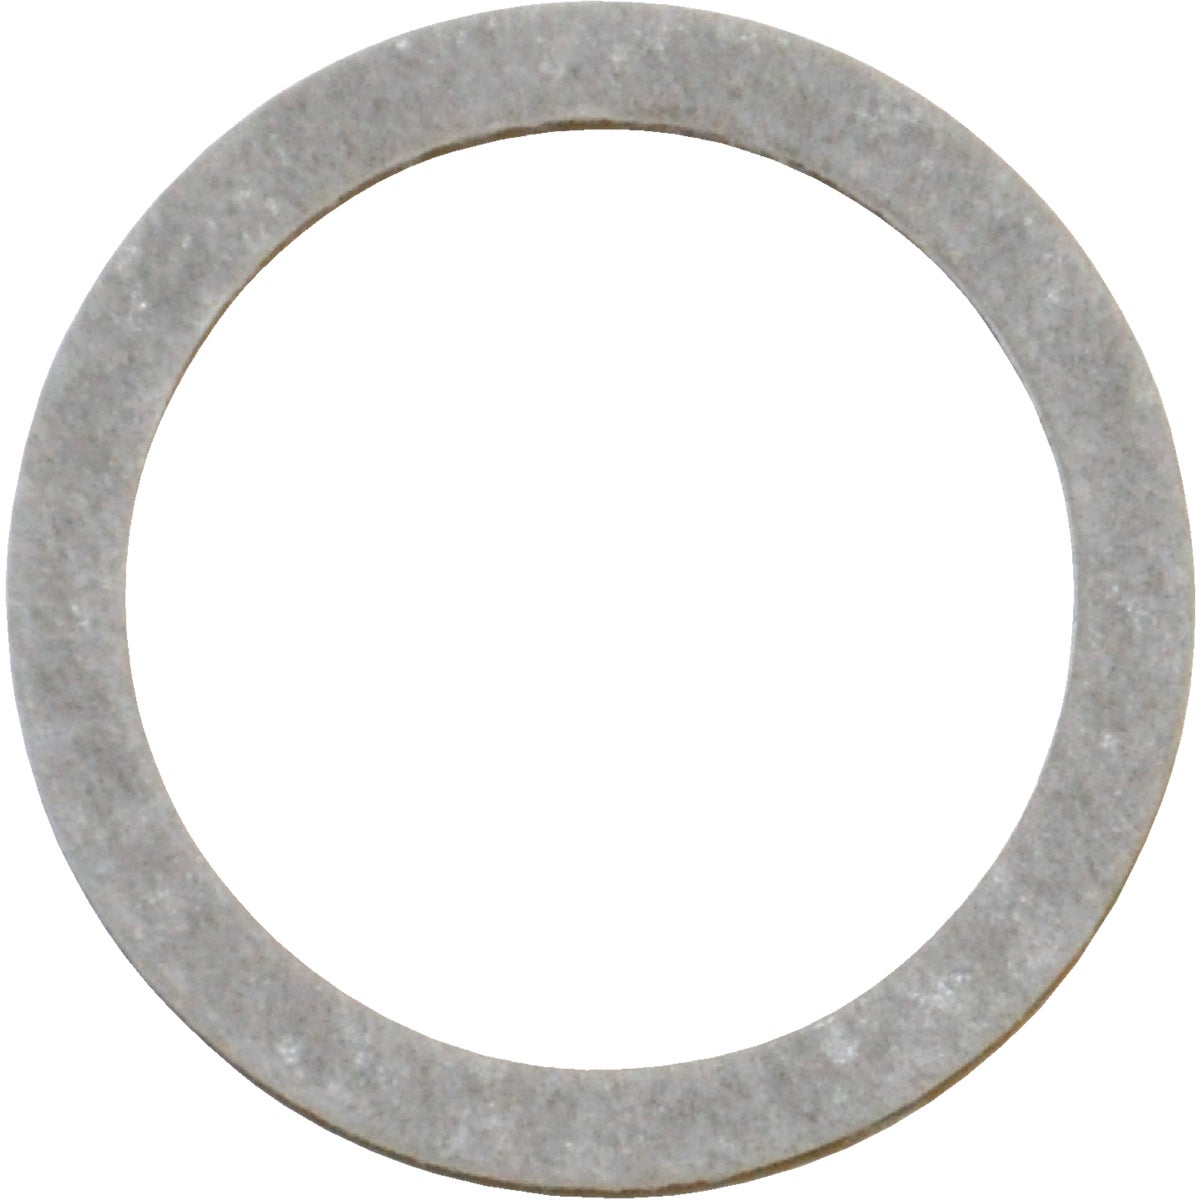 #36 CAP THREAD GASKET